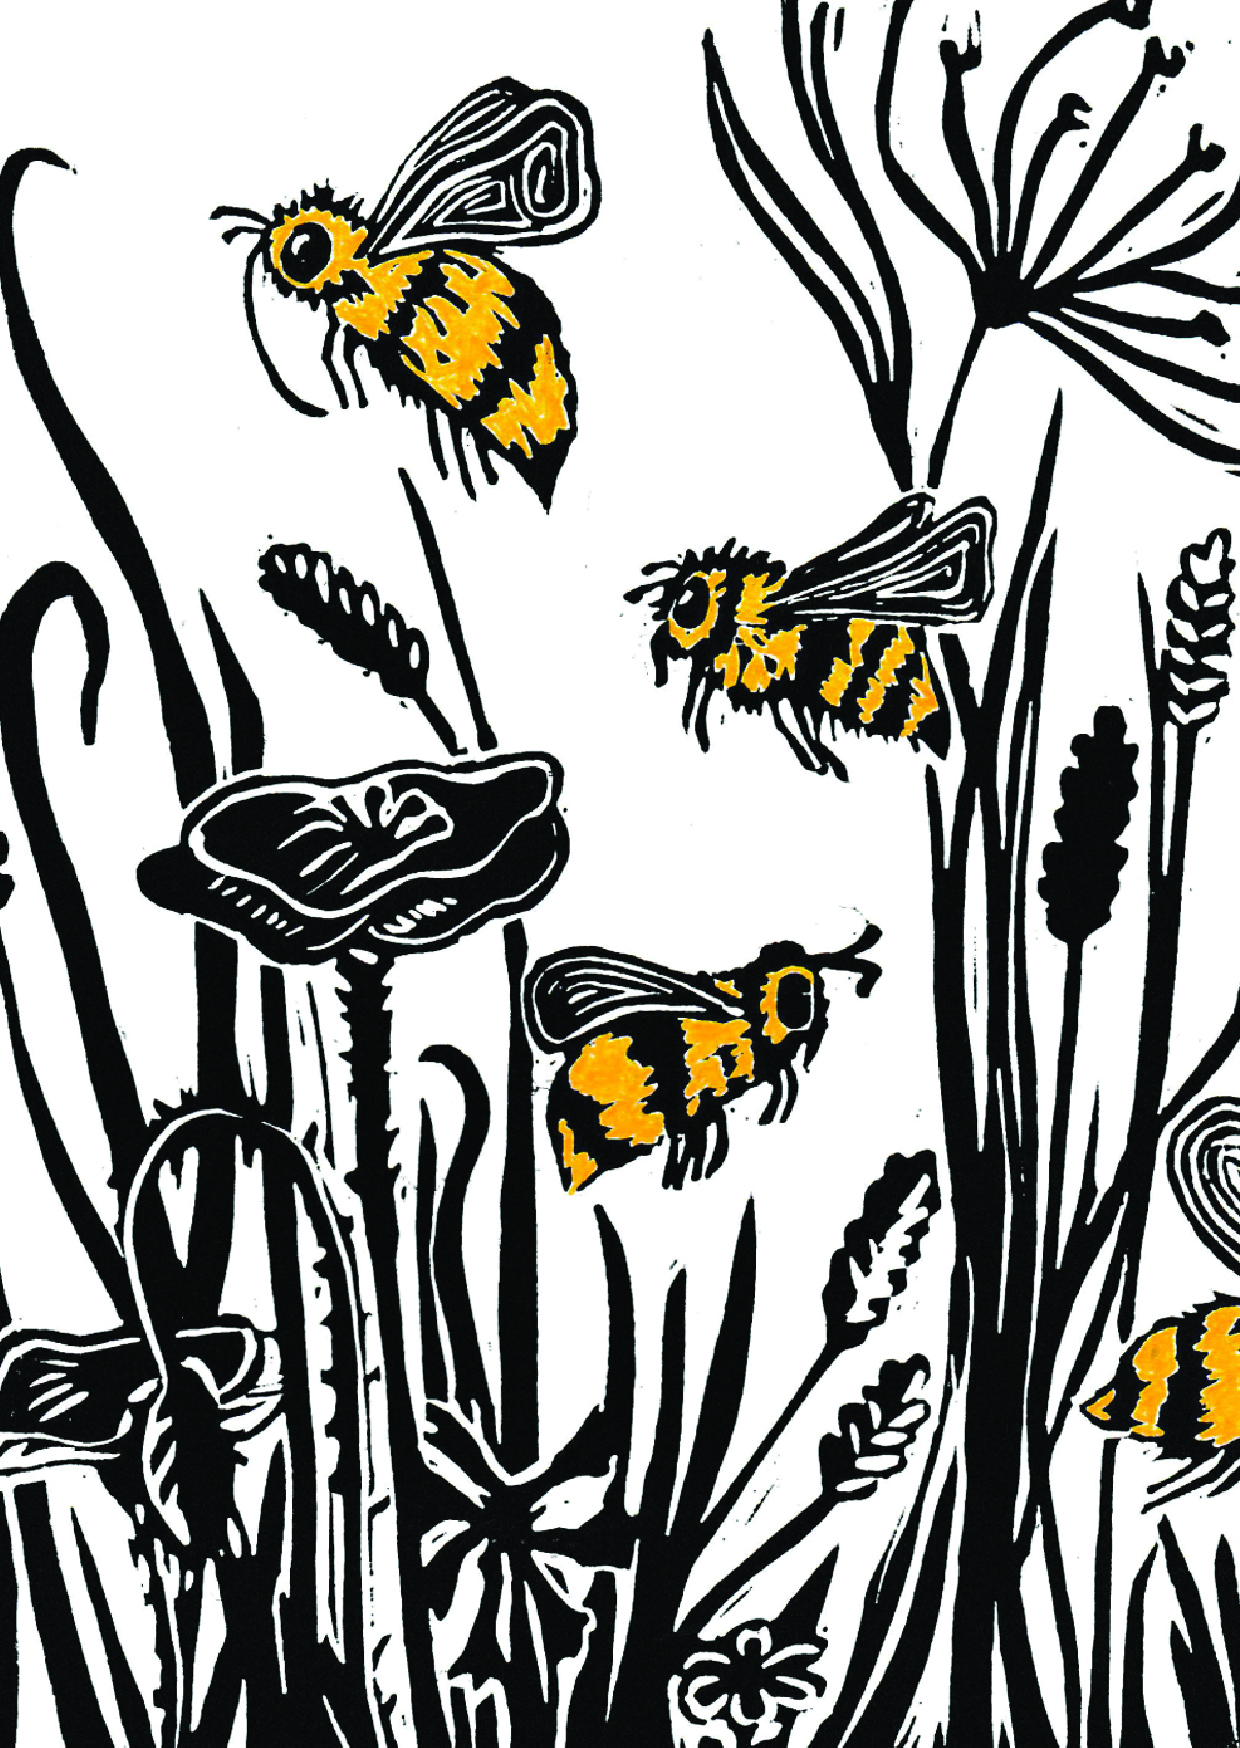 - Cornfield Bees, 2016.Linoprint created for Filberts of Dorset as a greetings card design. Now available in their online store and in shops and galleries around the UK.